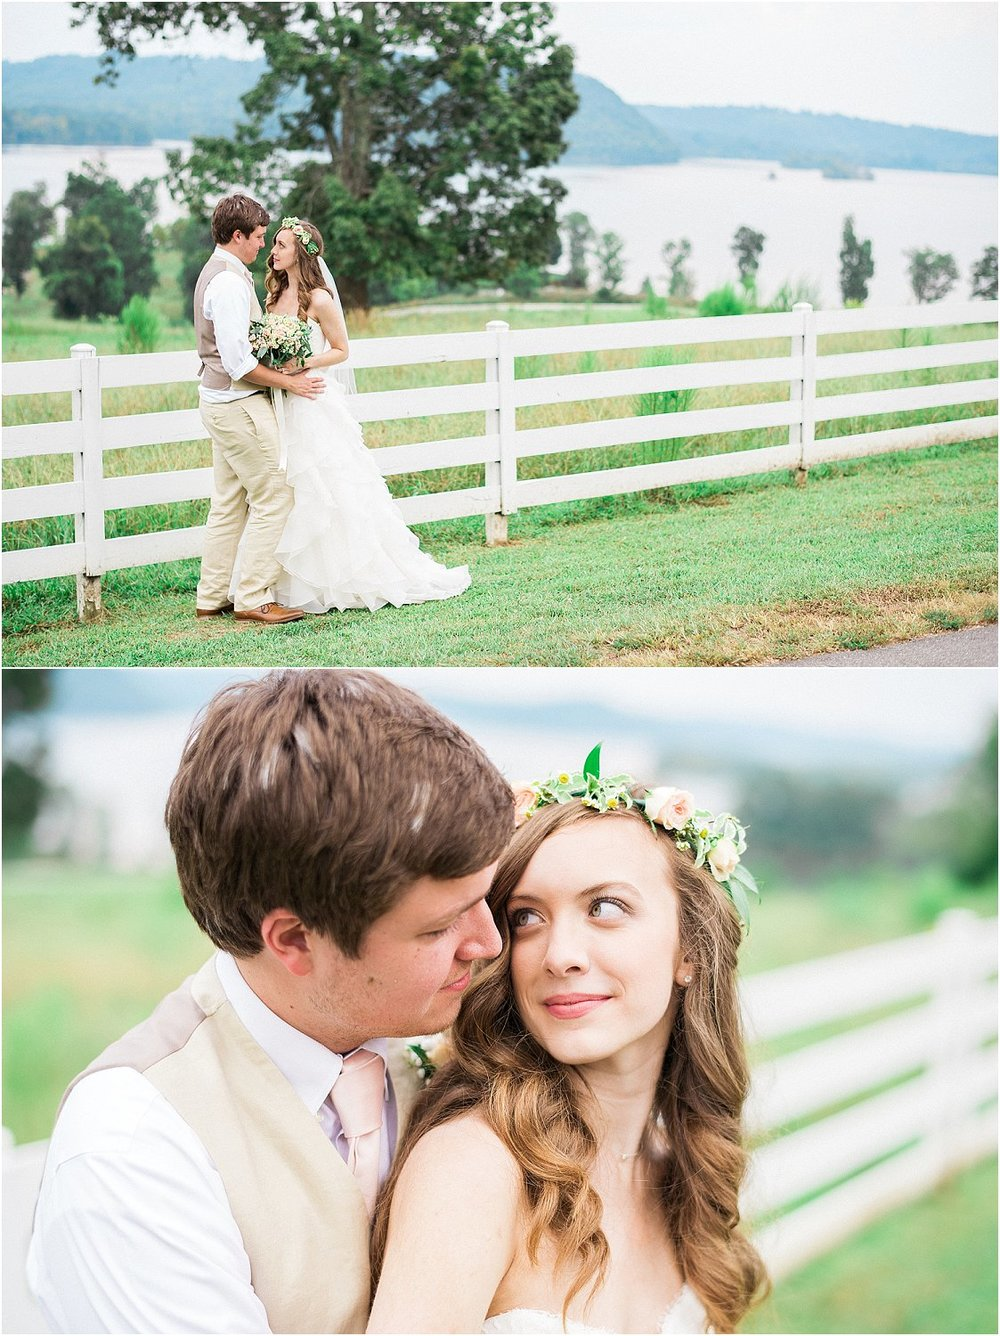 JuicebeatsPhotography_fineartwedding_Ashley&Matt_0042.jpg